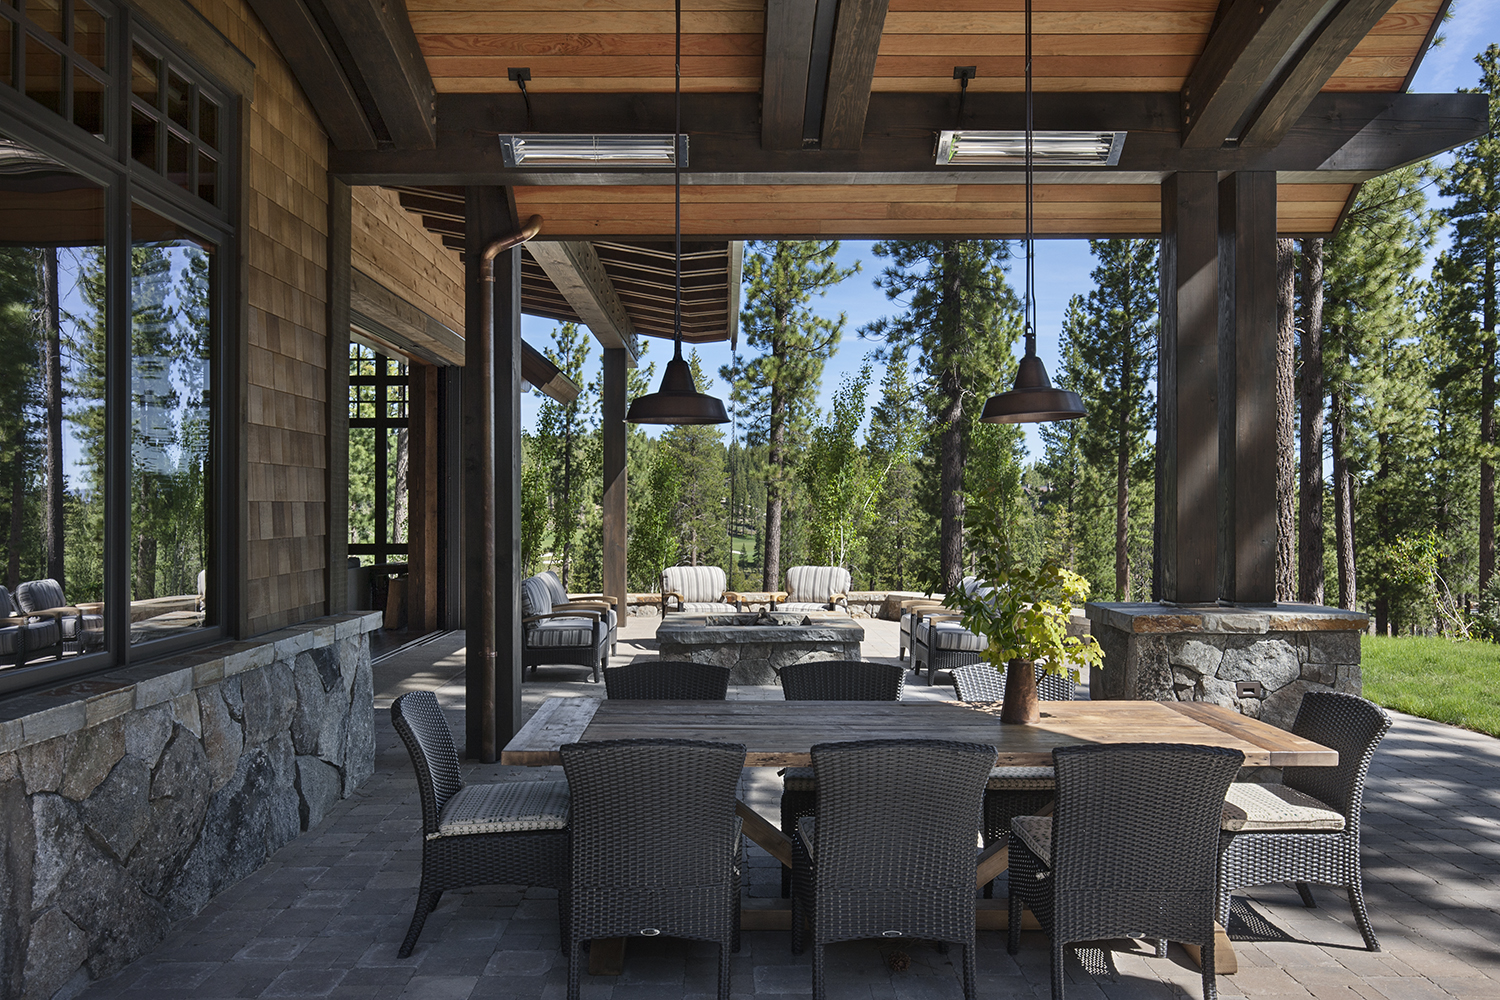 Lot 640_Exterior_Covered Dining_Firepit_Patios.jpg